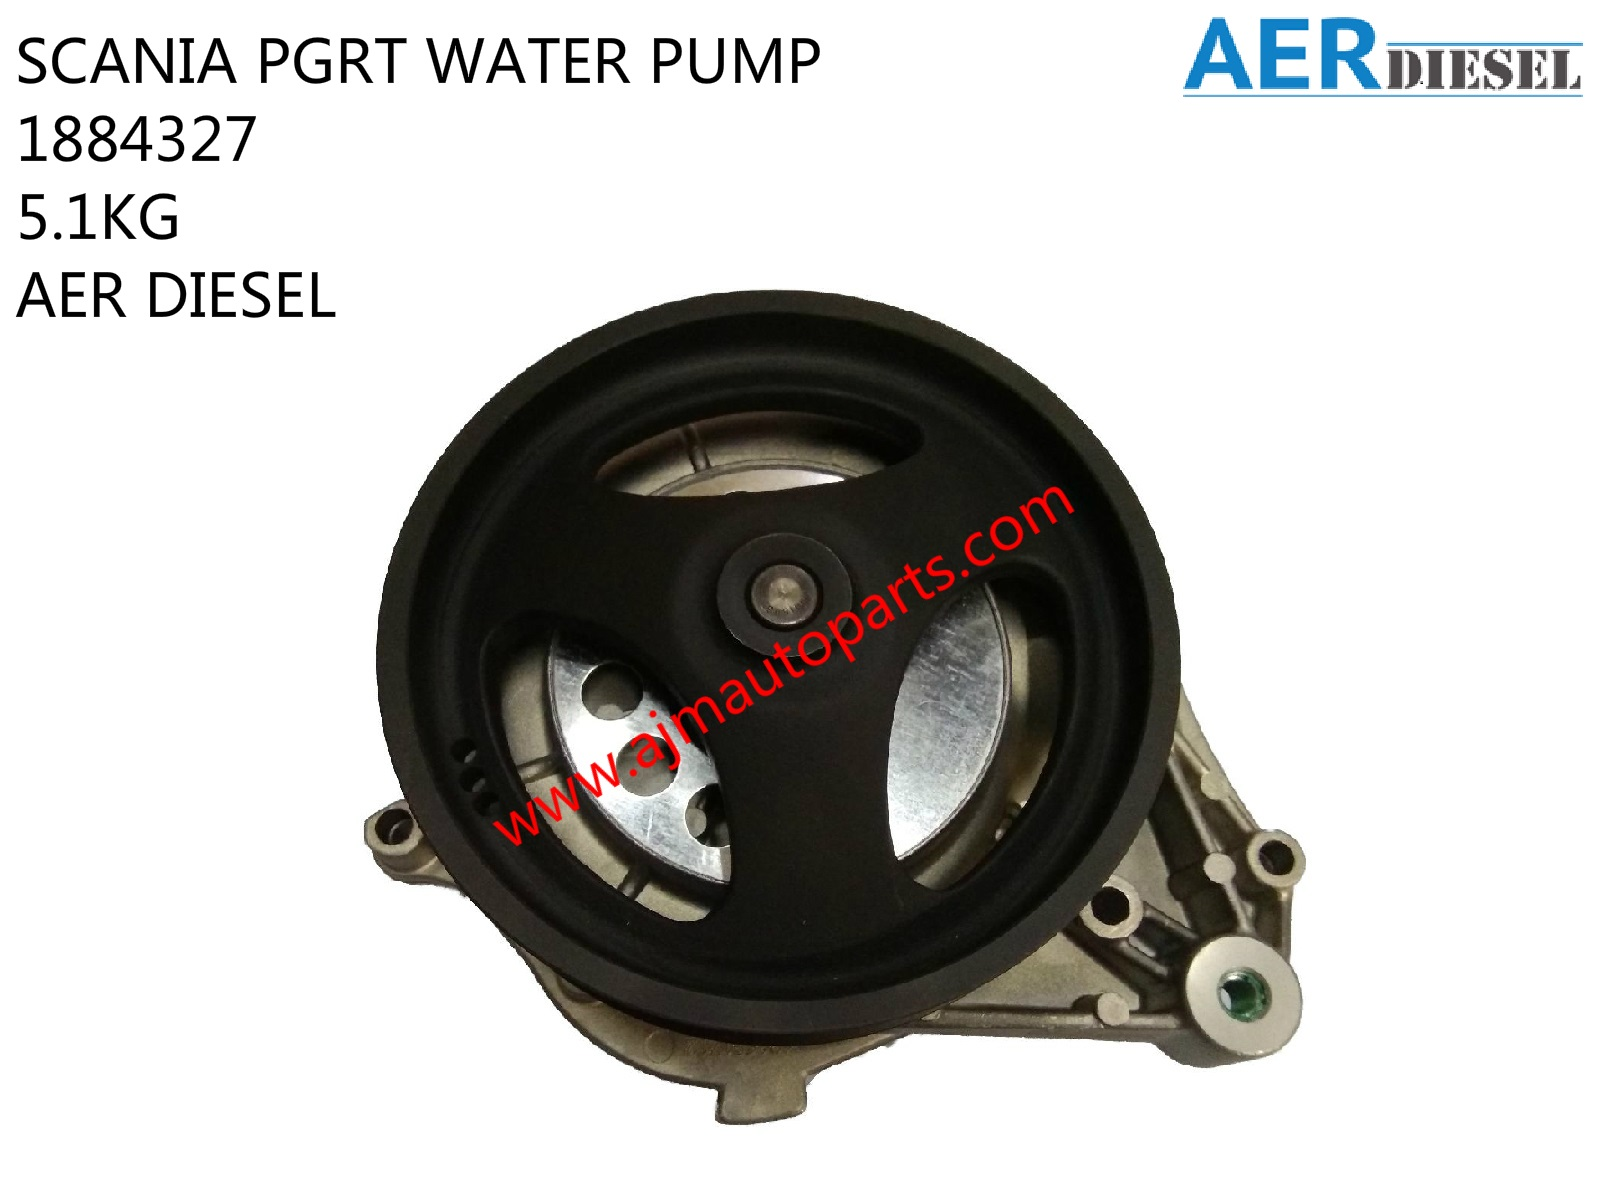 SCANIA PGRT WATER PUMP-1884327